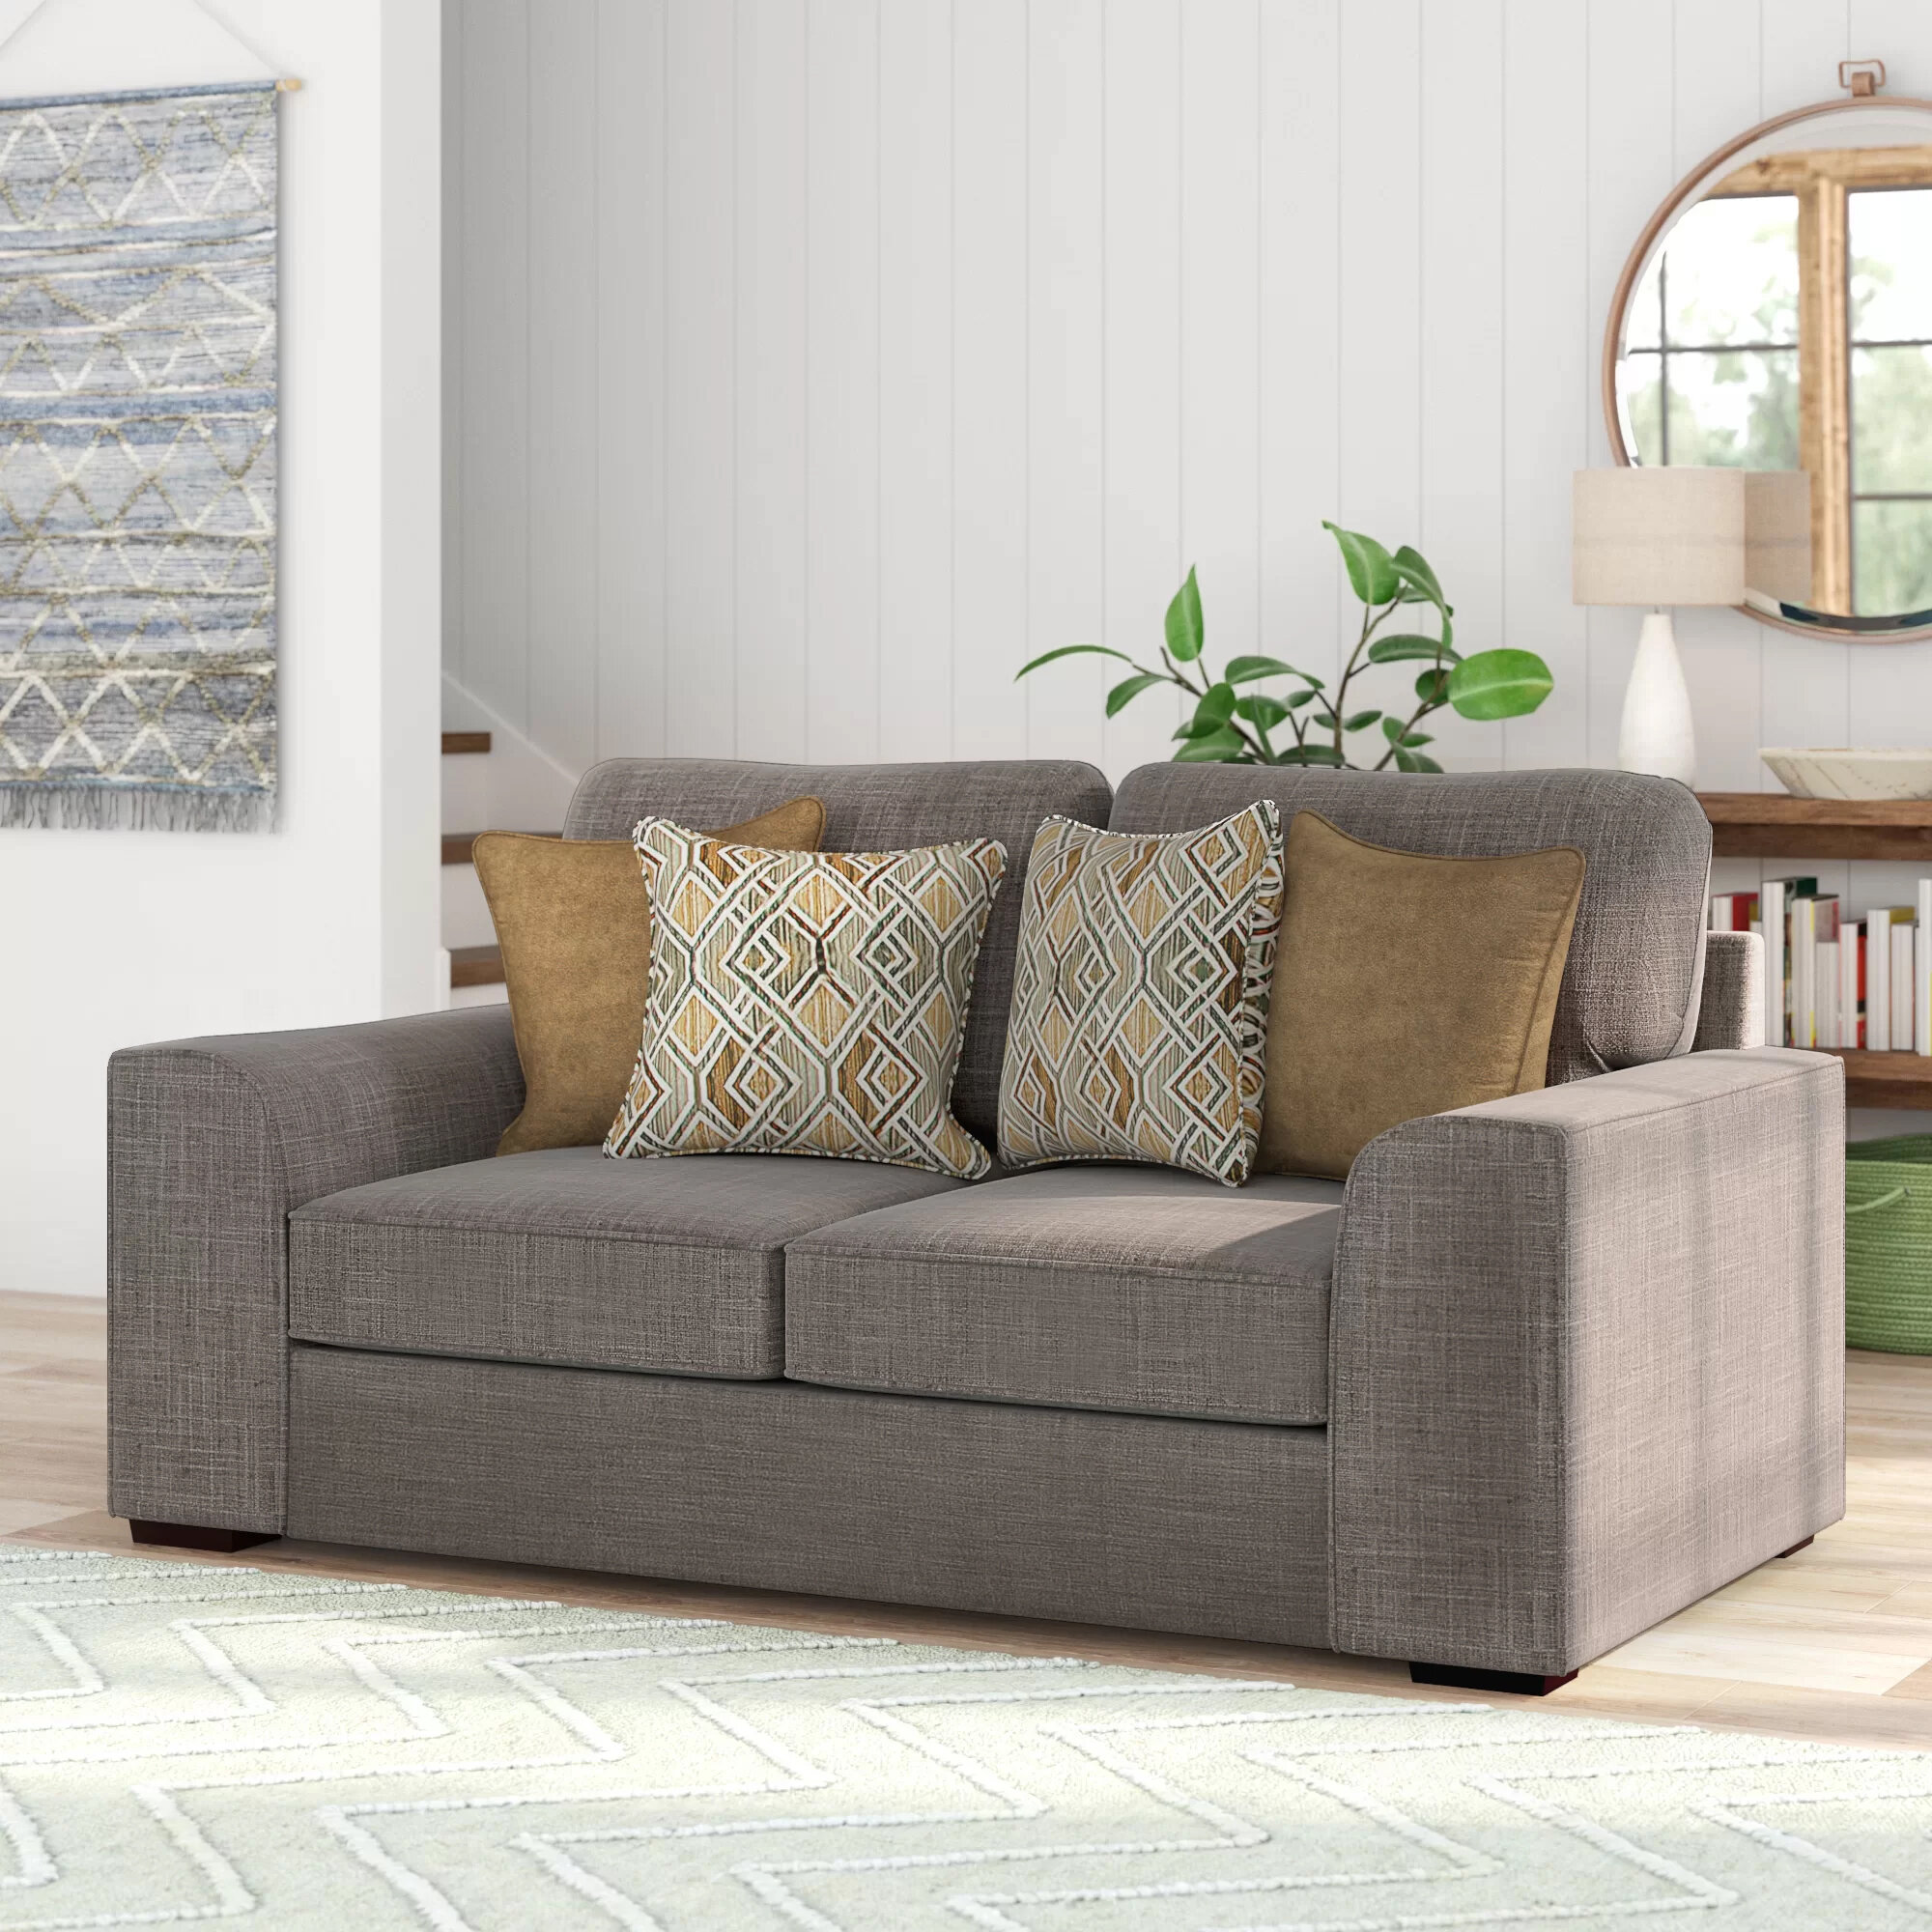 Zipcode Design Ackers Brook Loveseat By Simmons Upholstery & Reviews